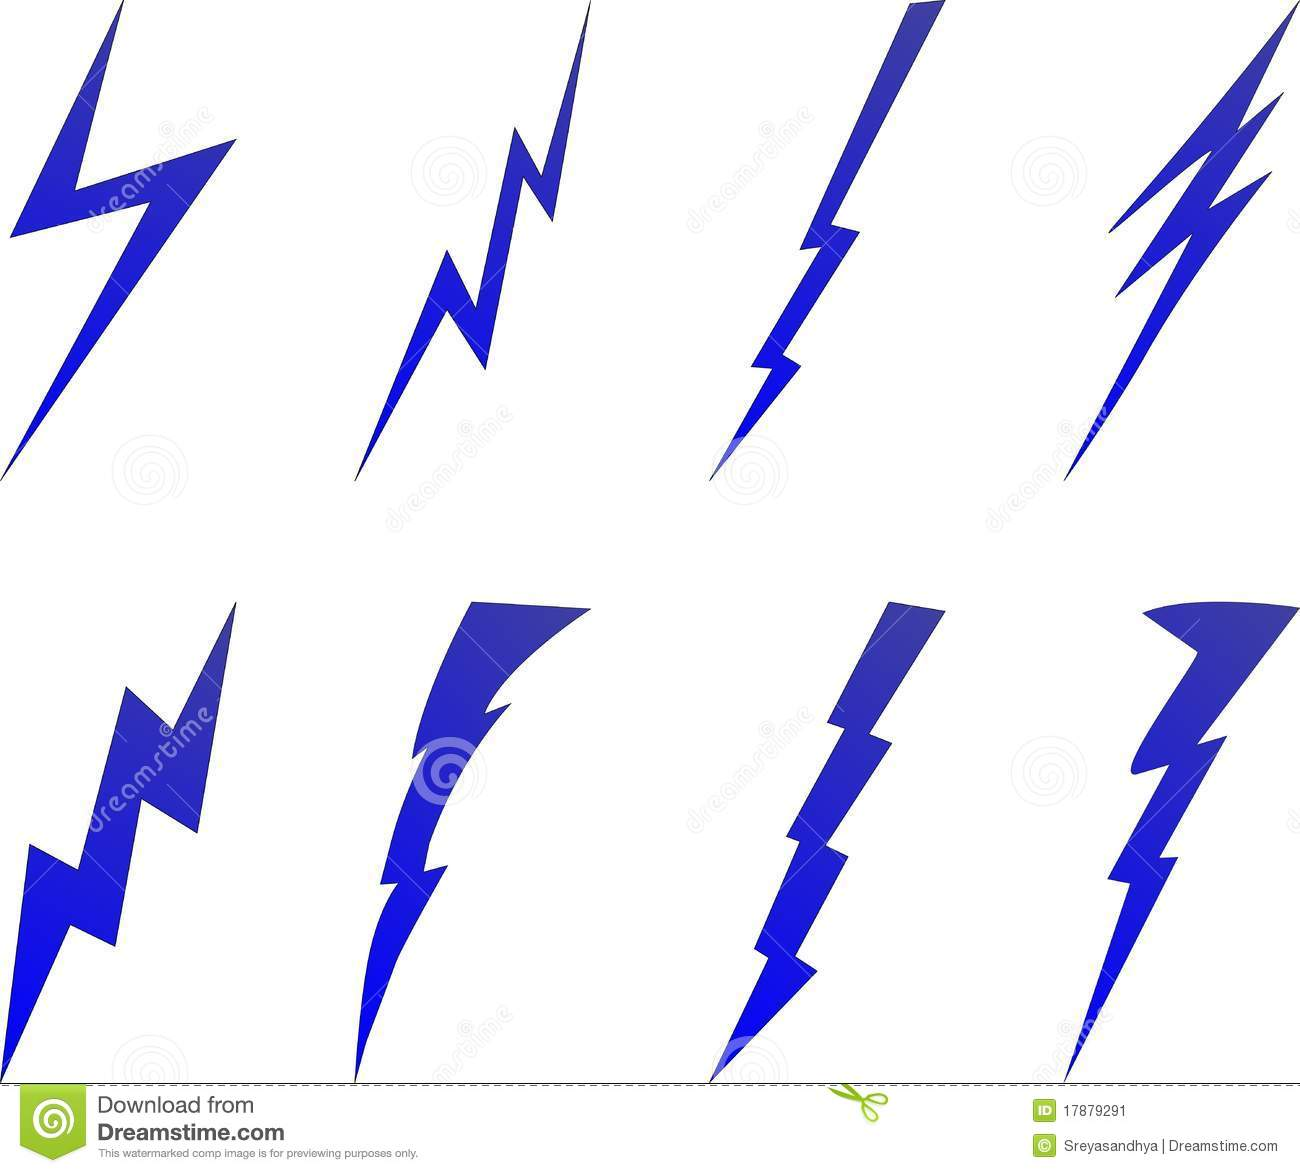 Lightning bolt symbols stock illustration. Illustration of ... for Vector Lighting Bolt  156eri